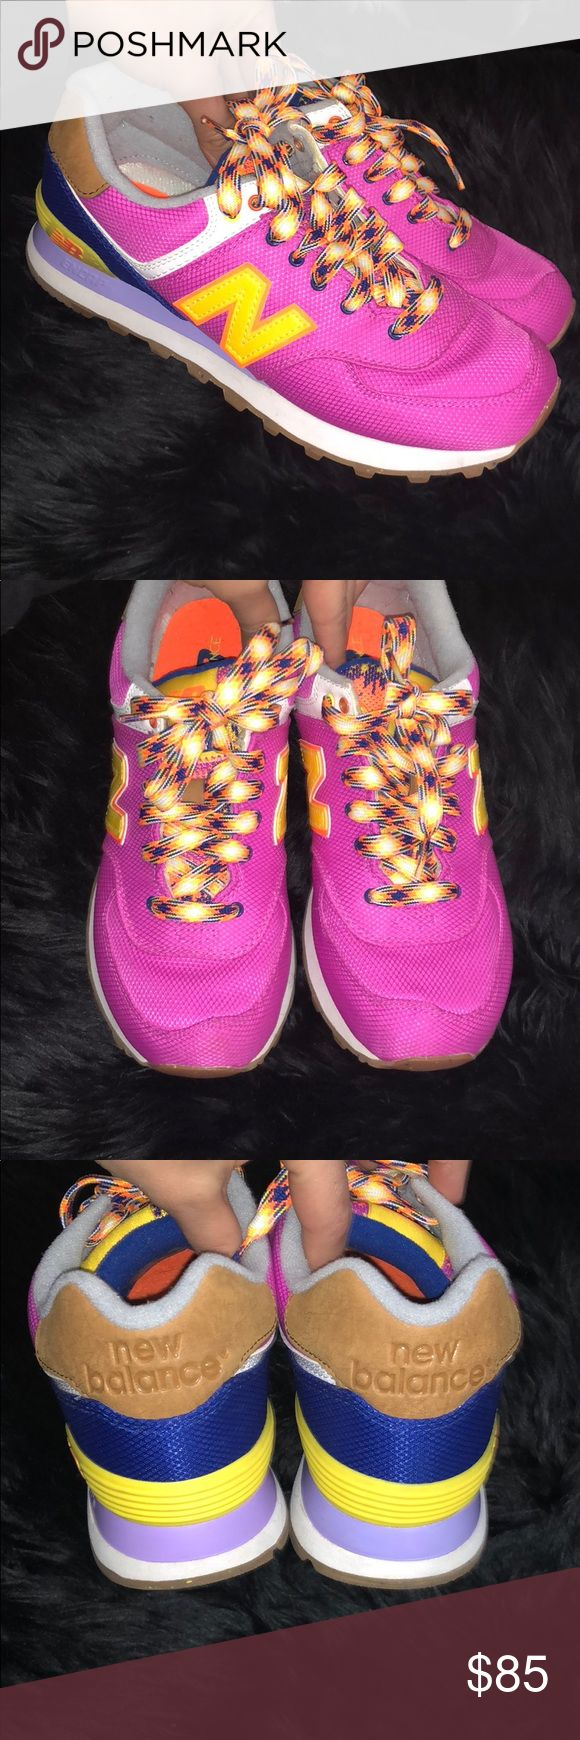 New balance purple/yellow sneakers size 8 Like New no box  Upper Mesh / synthetic leather New balance 574 genuine new balance WL574 EXB purple/yellow women's sneakers New Balance Shoes Sneakers